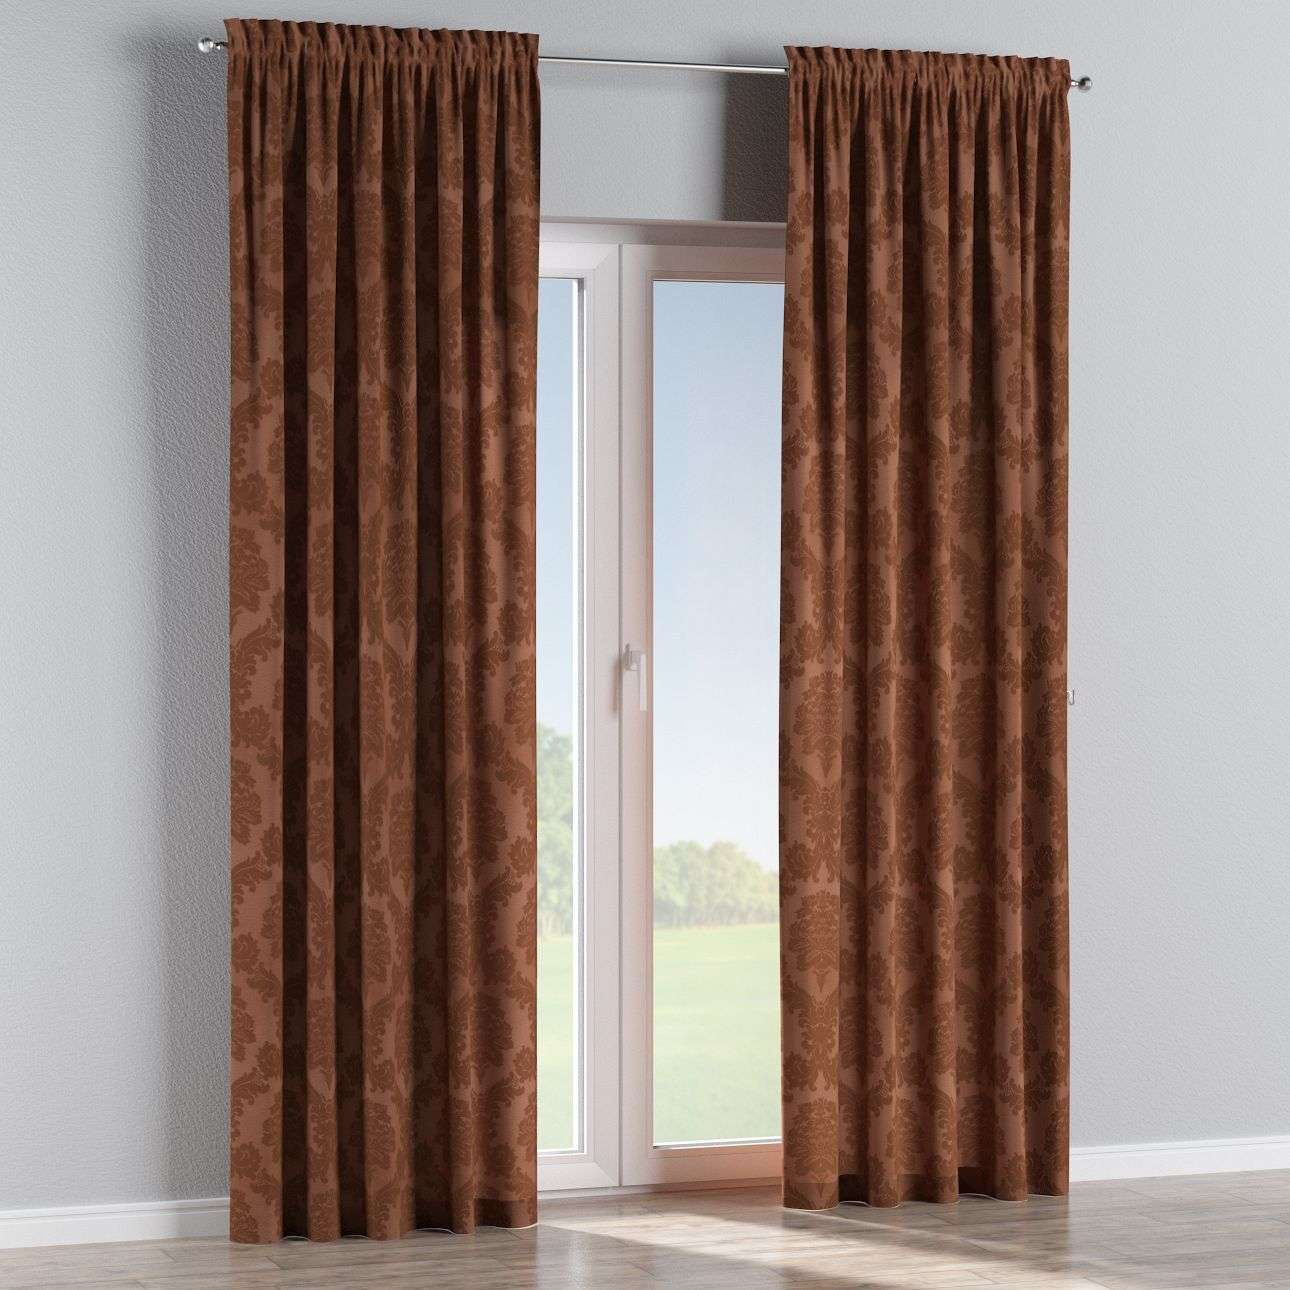 Slot and frill curtains in collection Damasco, fabric: 613-88